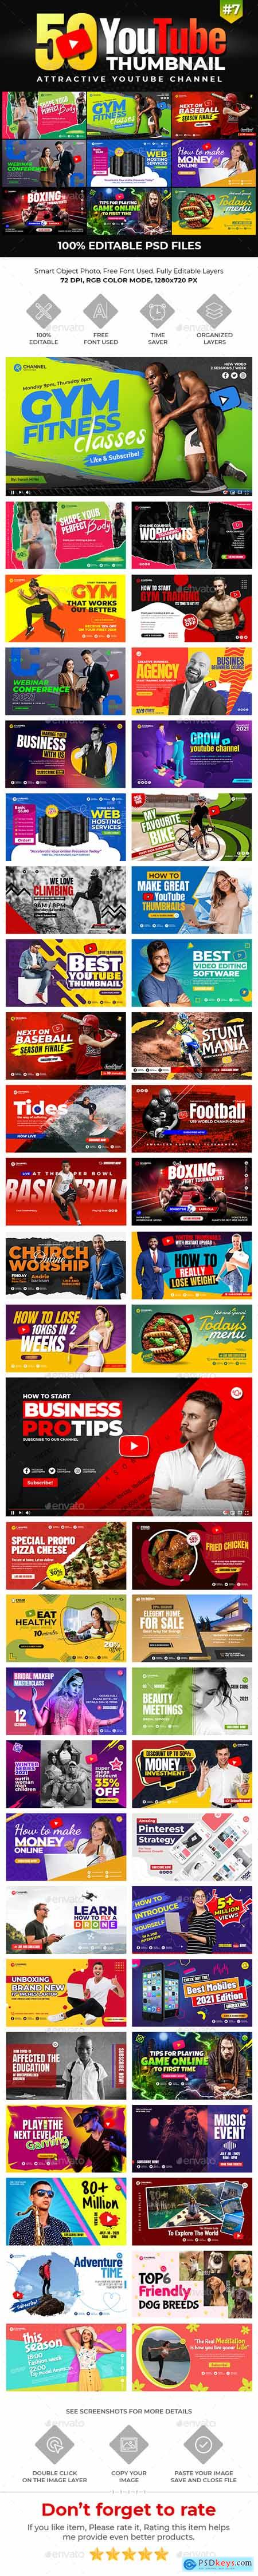 50-Youtube Thumbnail Templates 30186262